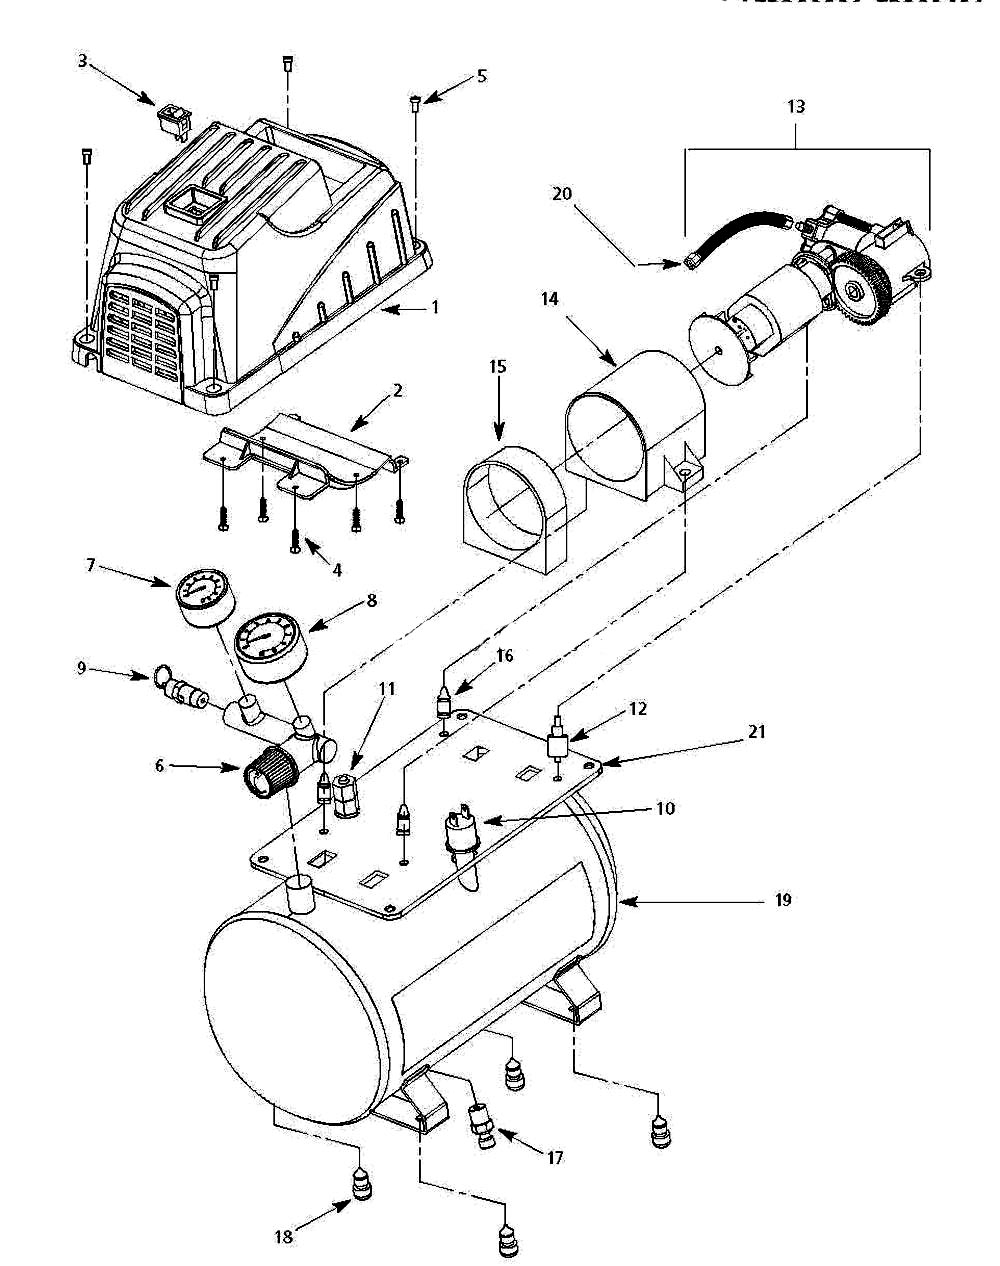 FP209001, FP209401 - Air Compressor Parts schematic